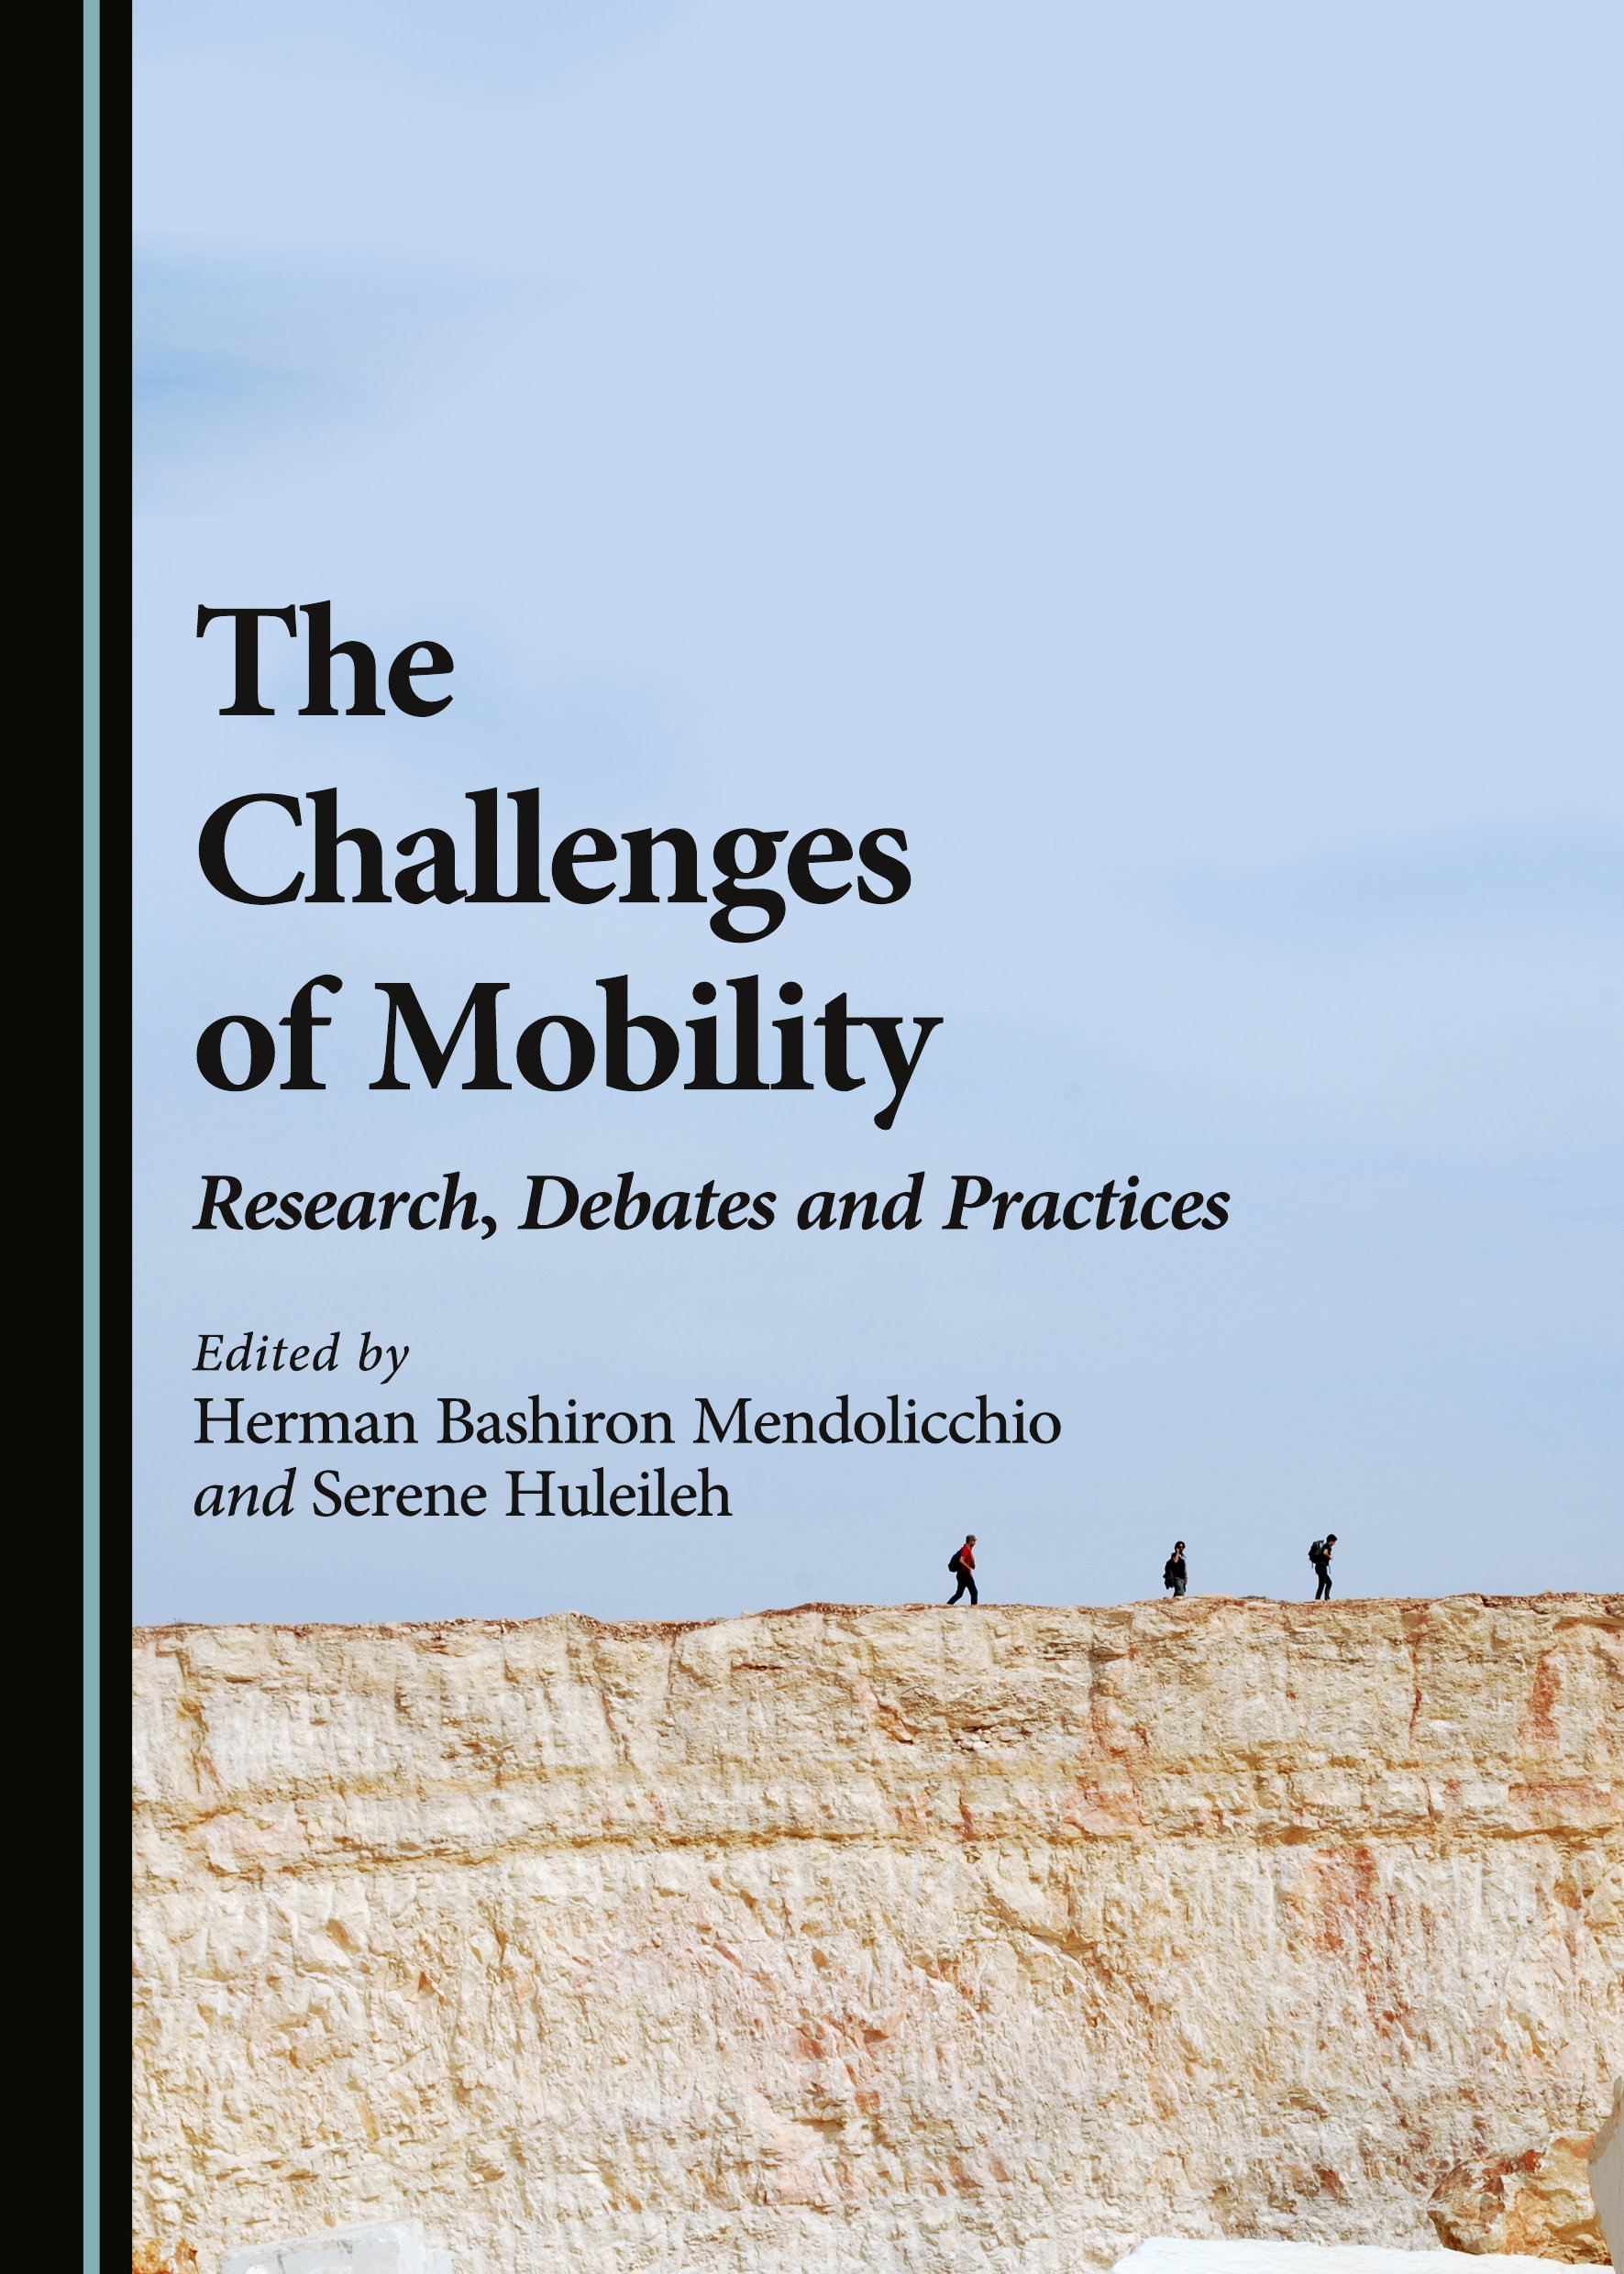 The Challenges of Mobility: Research, Debates and Practices